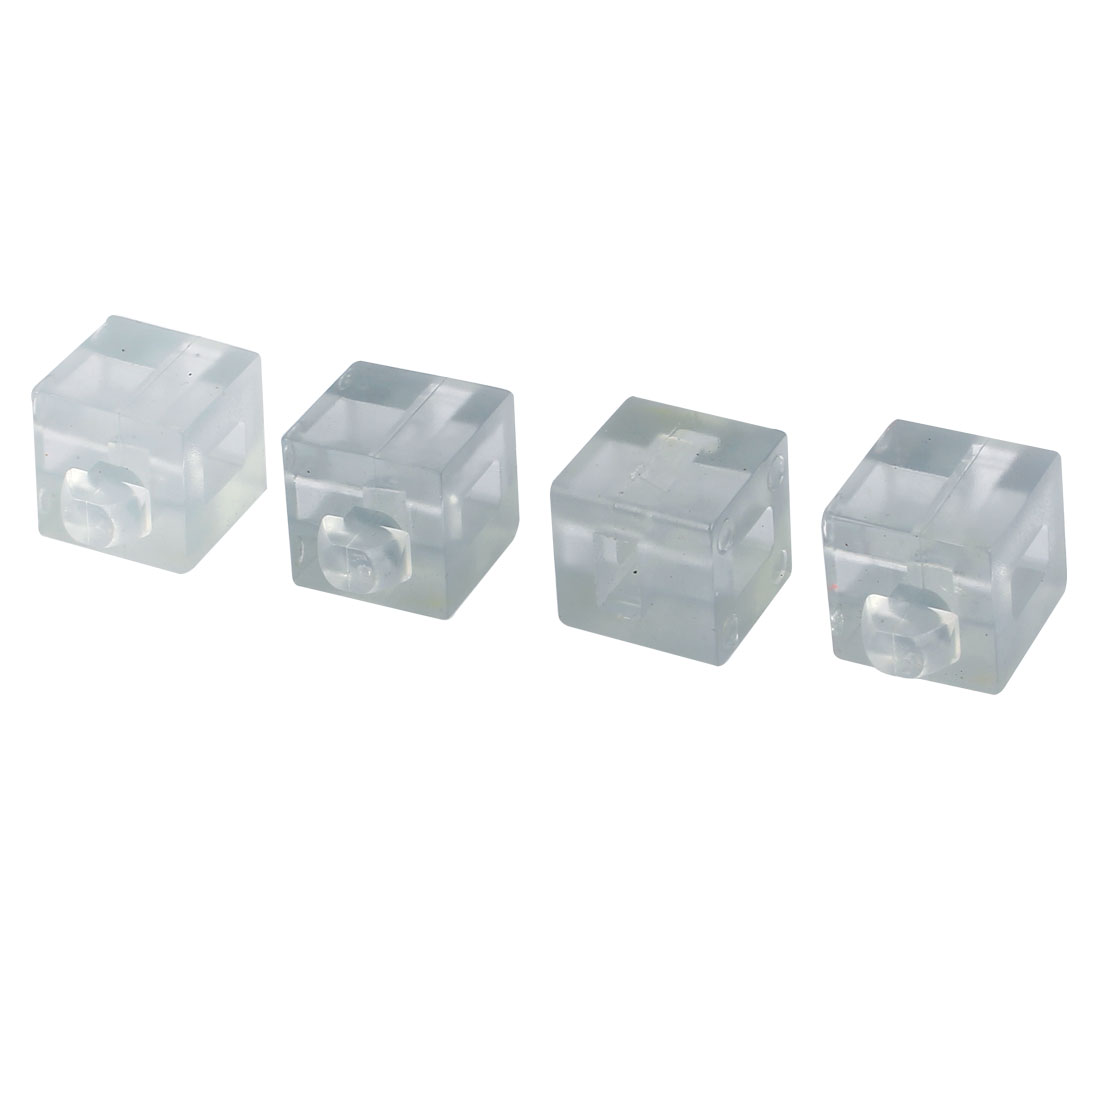 Aluminum Profile Glass Nylon Spacer Block Fastener Connector Clear 4pcs